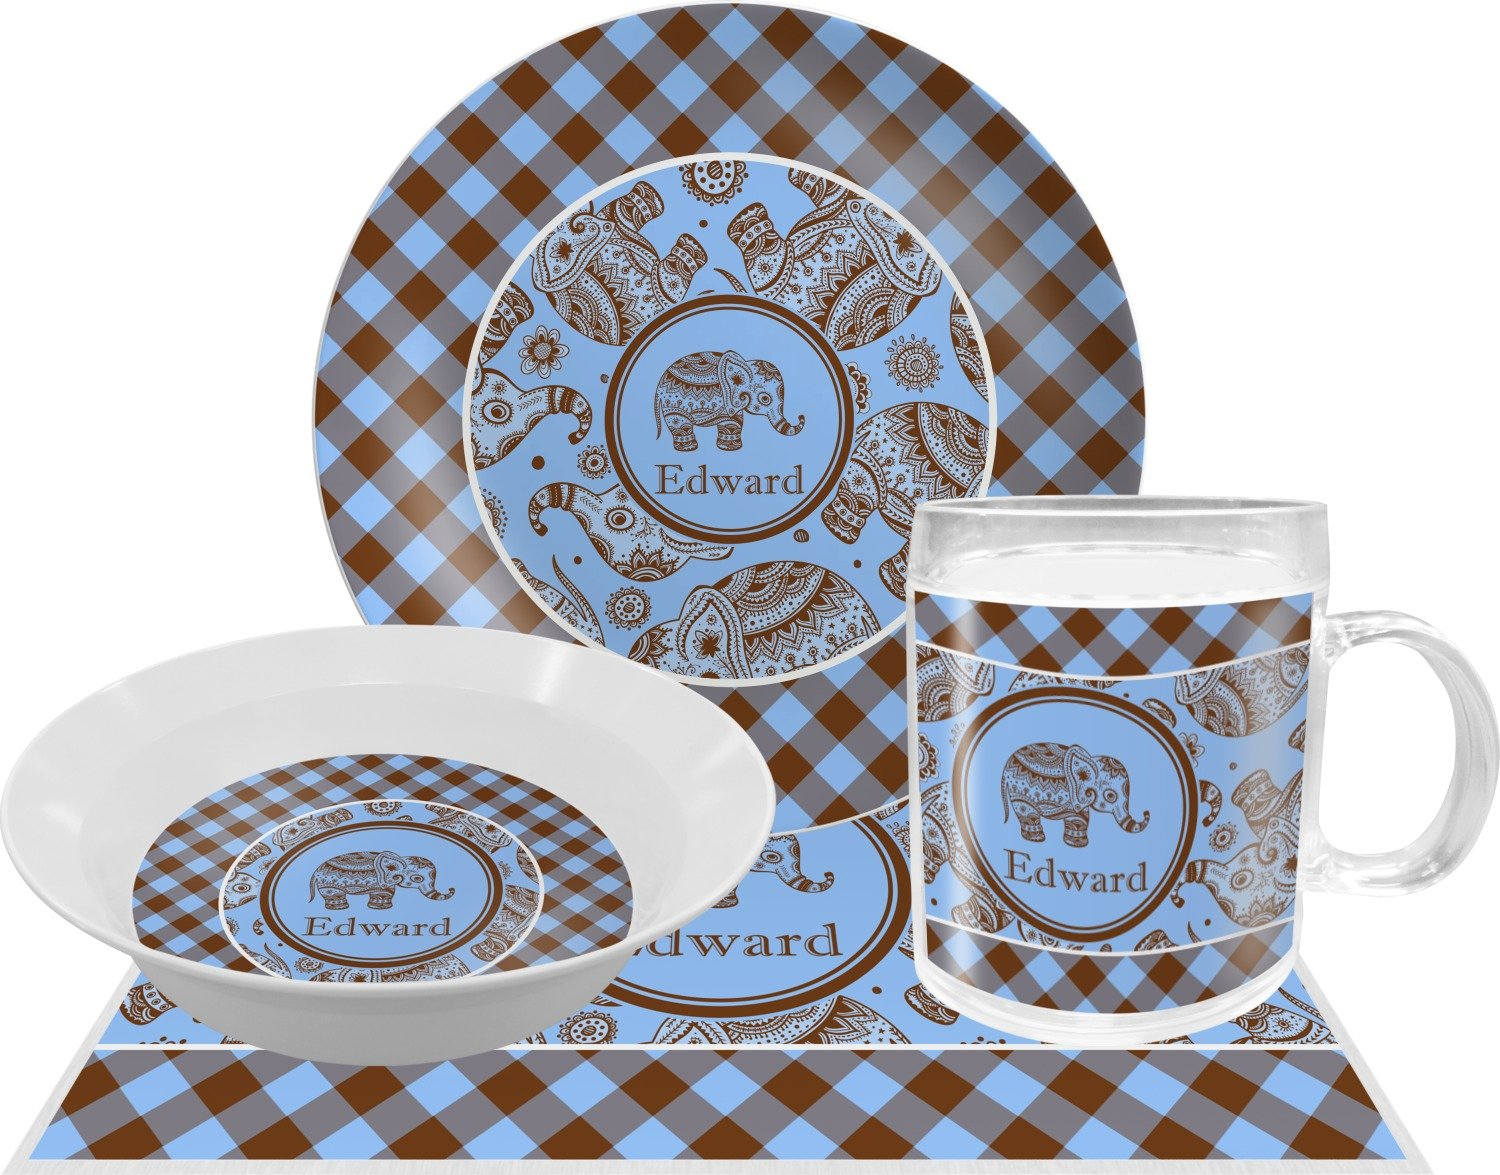 Gingham & Elephants Dinner Set - 4 Pc (Personalized)